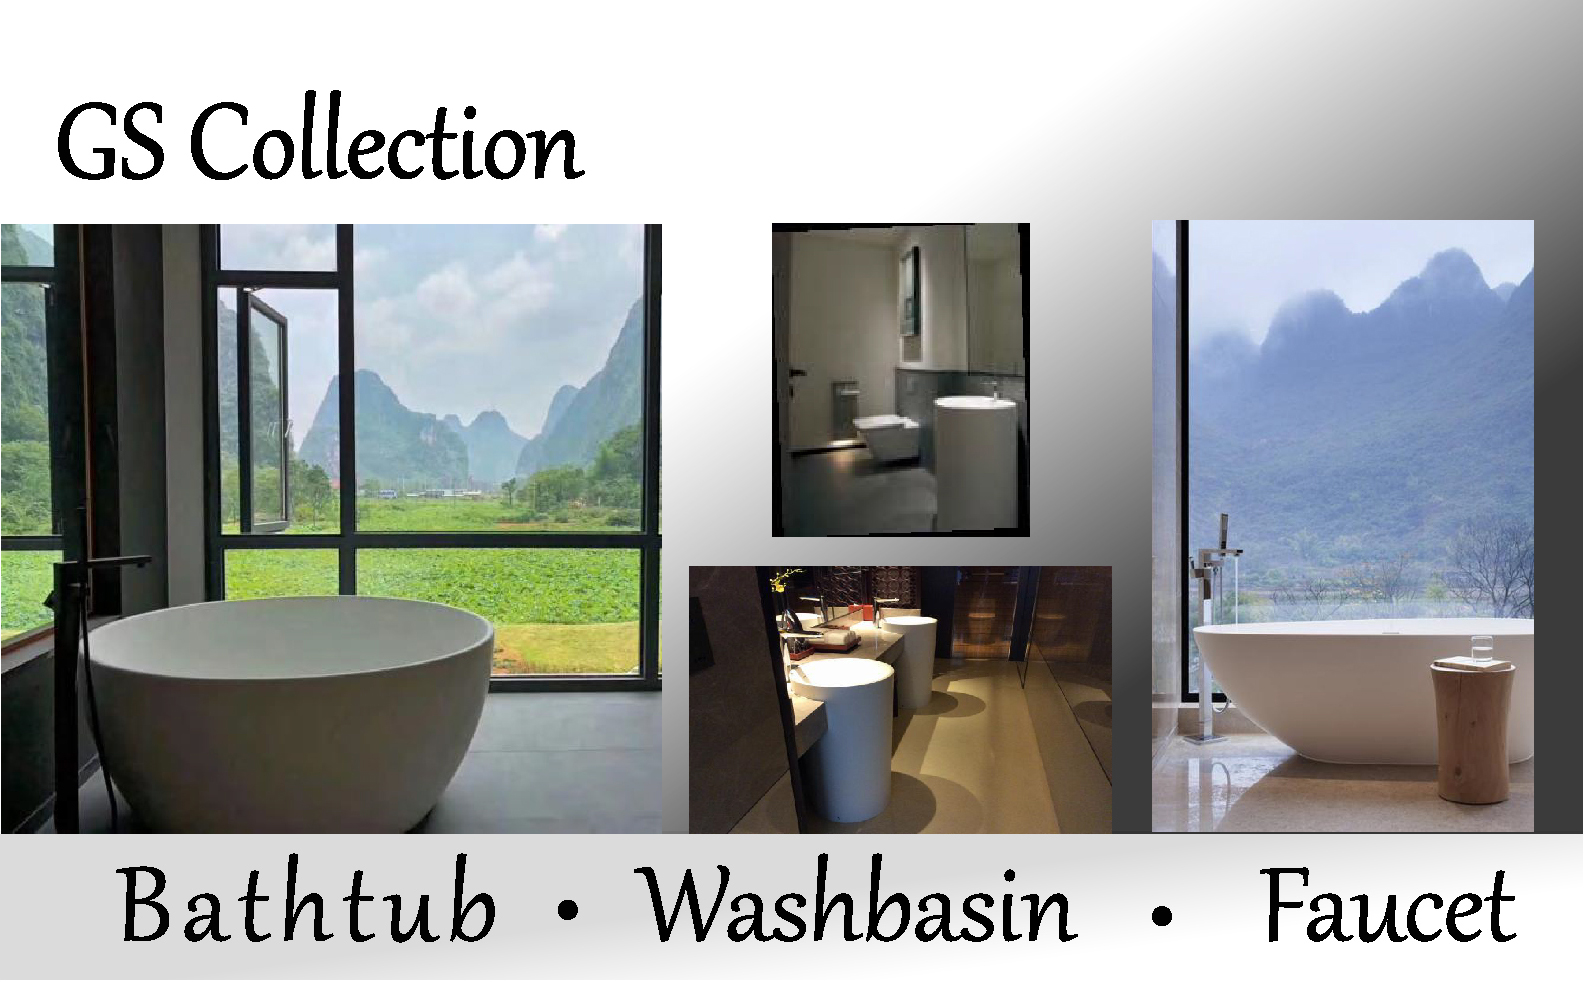 GS Collection Bathtub.Washbasin.Faucet